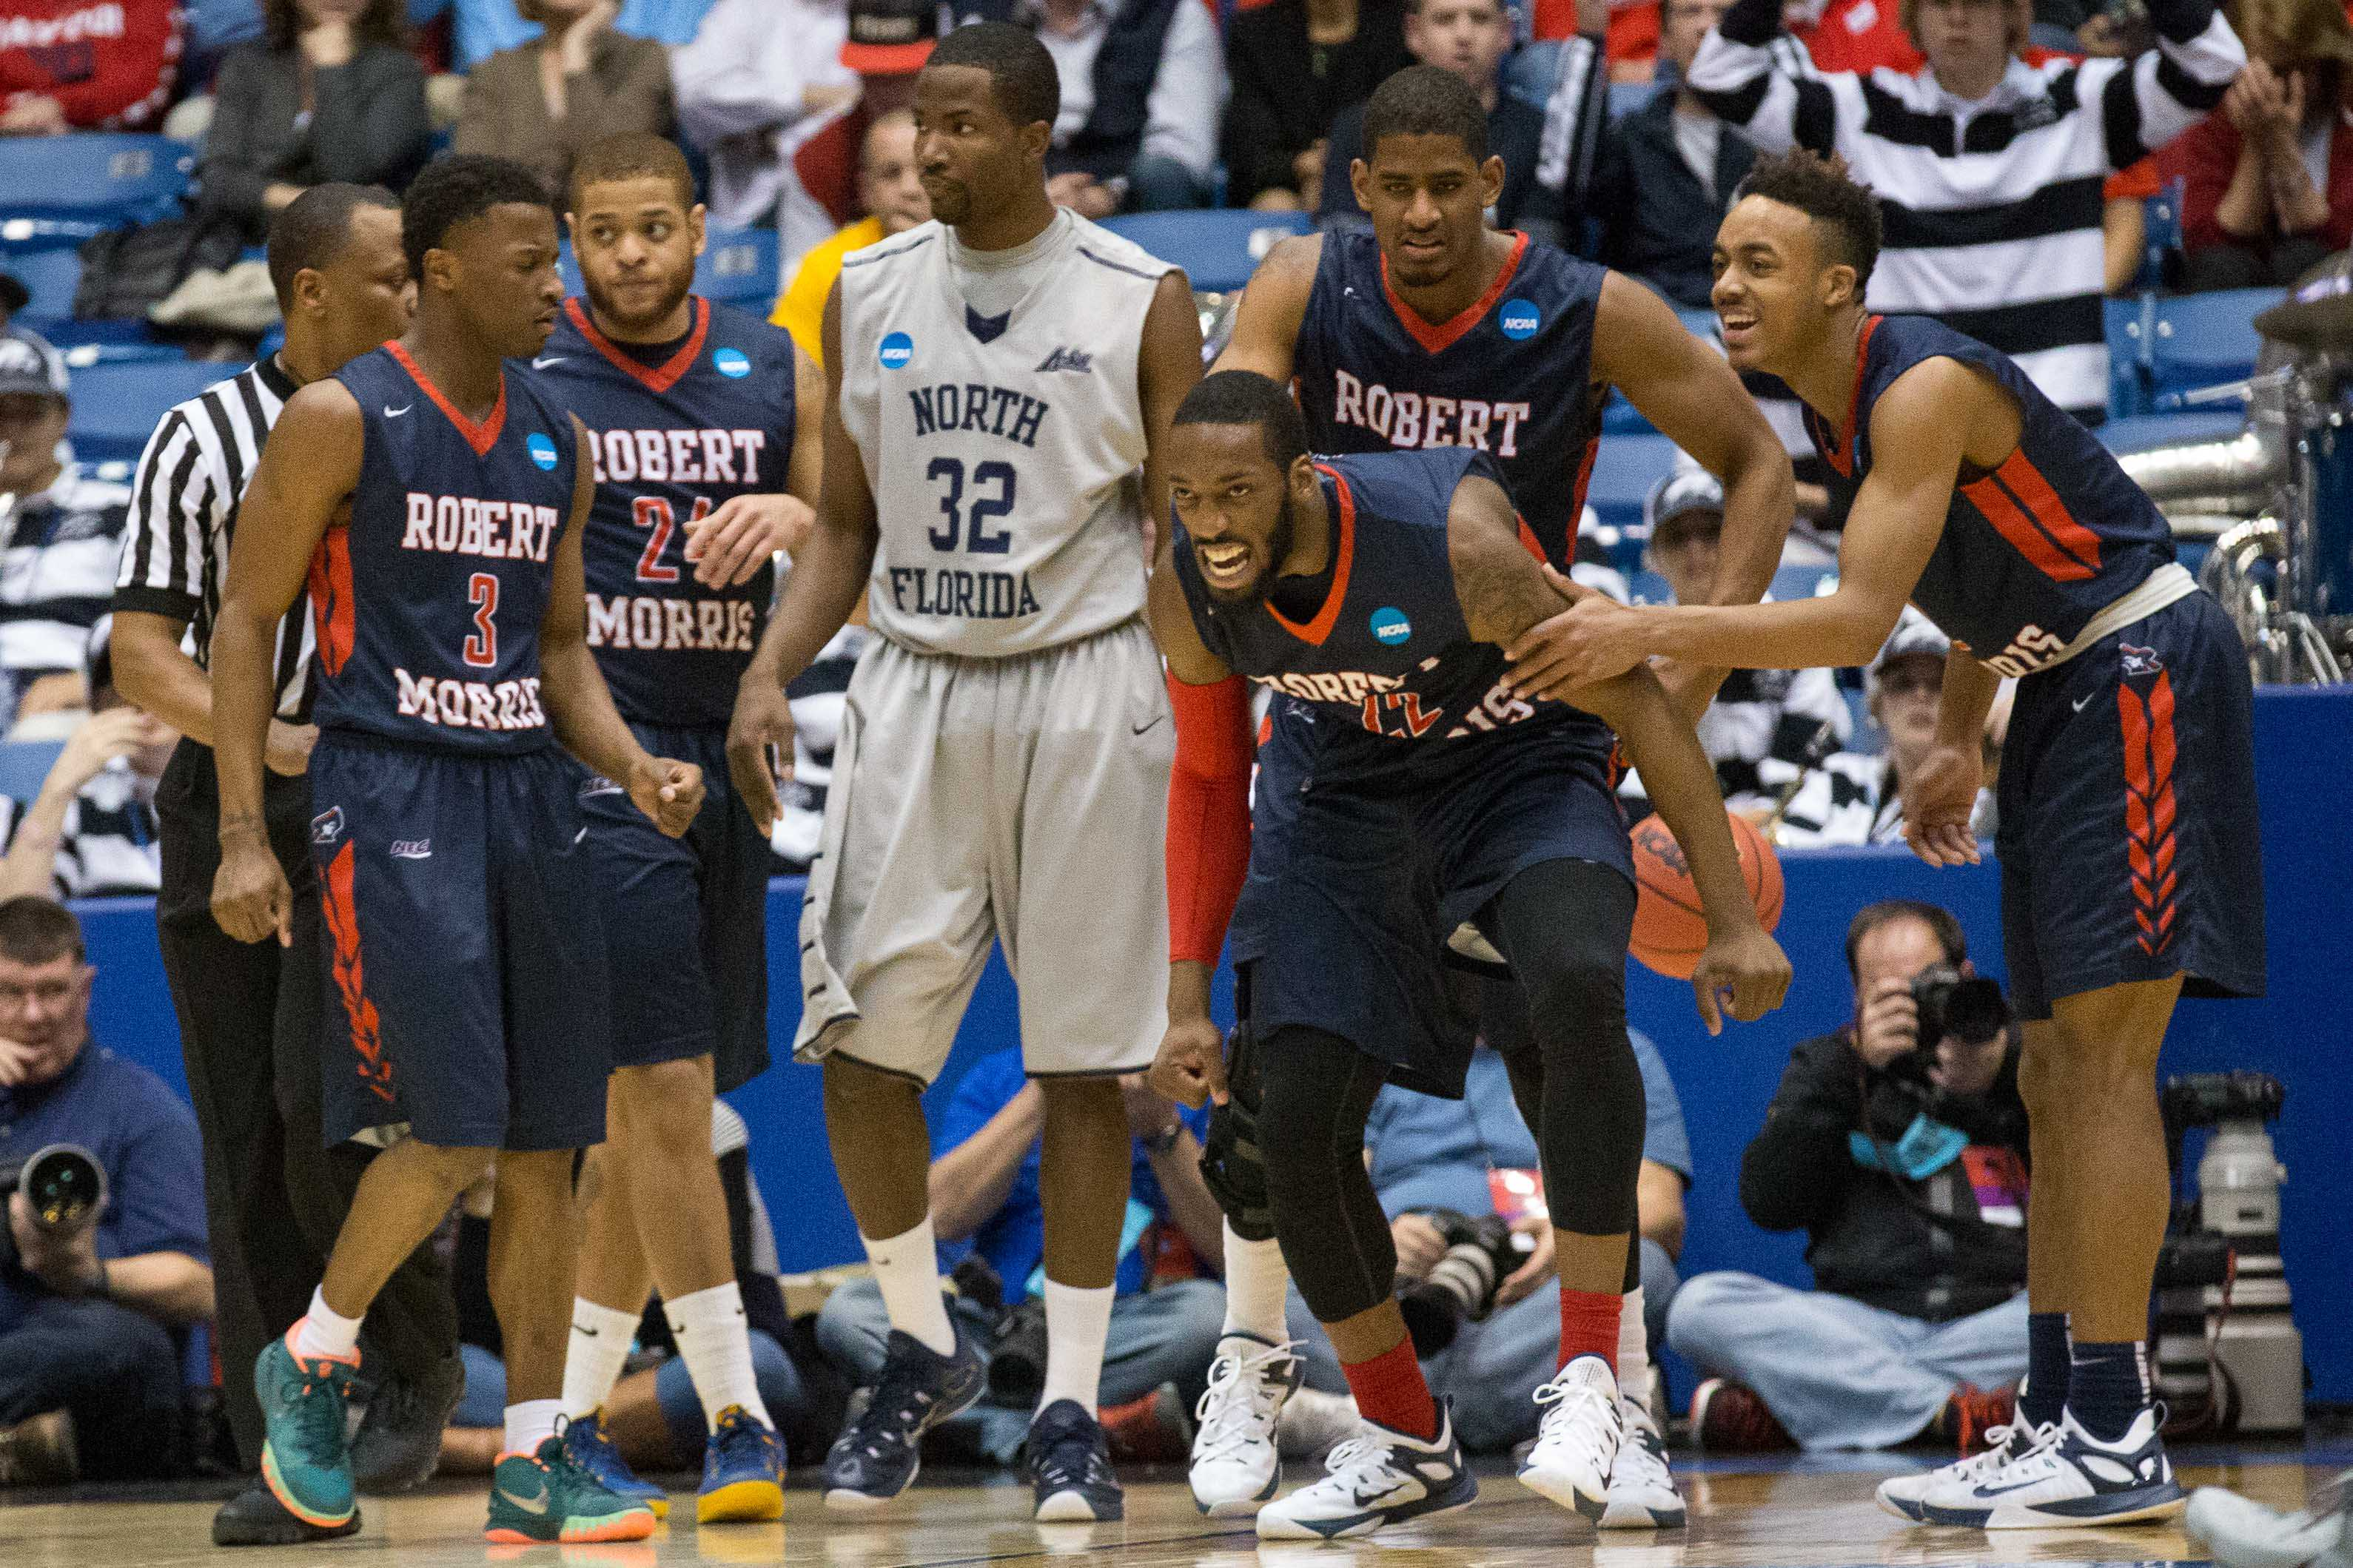 Lucky Jones lets out a roar of excitement after RMU's opening round win over North Florida.